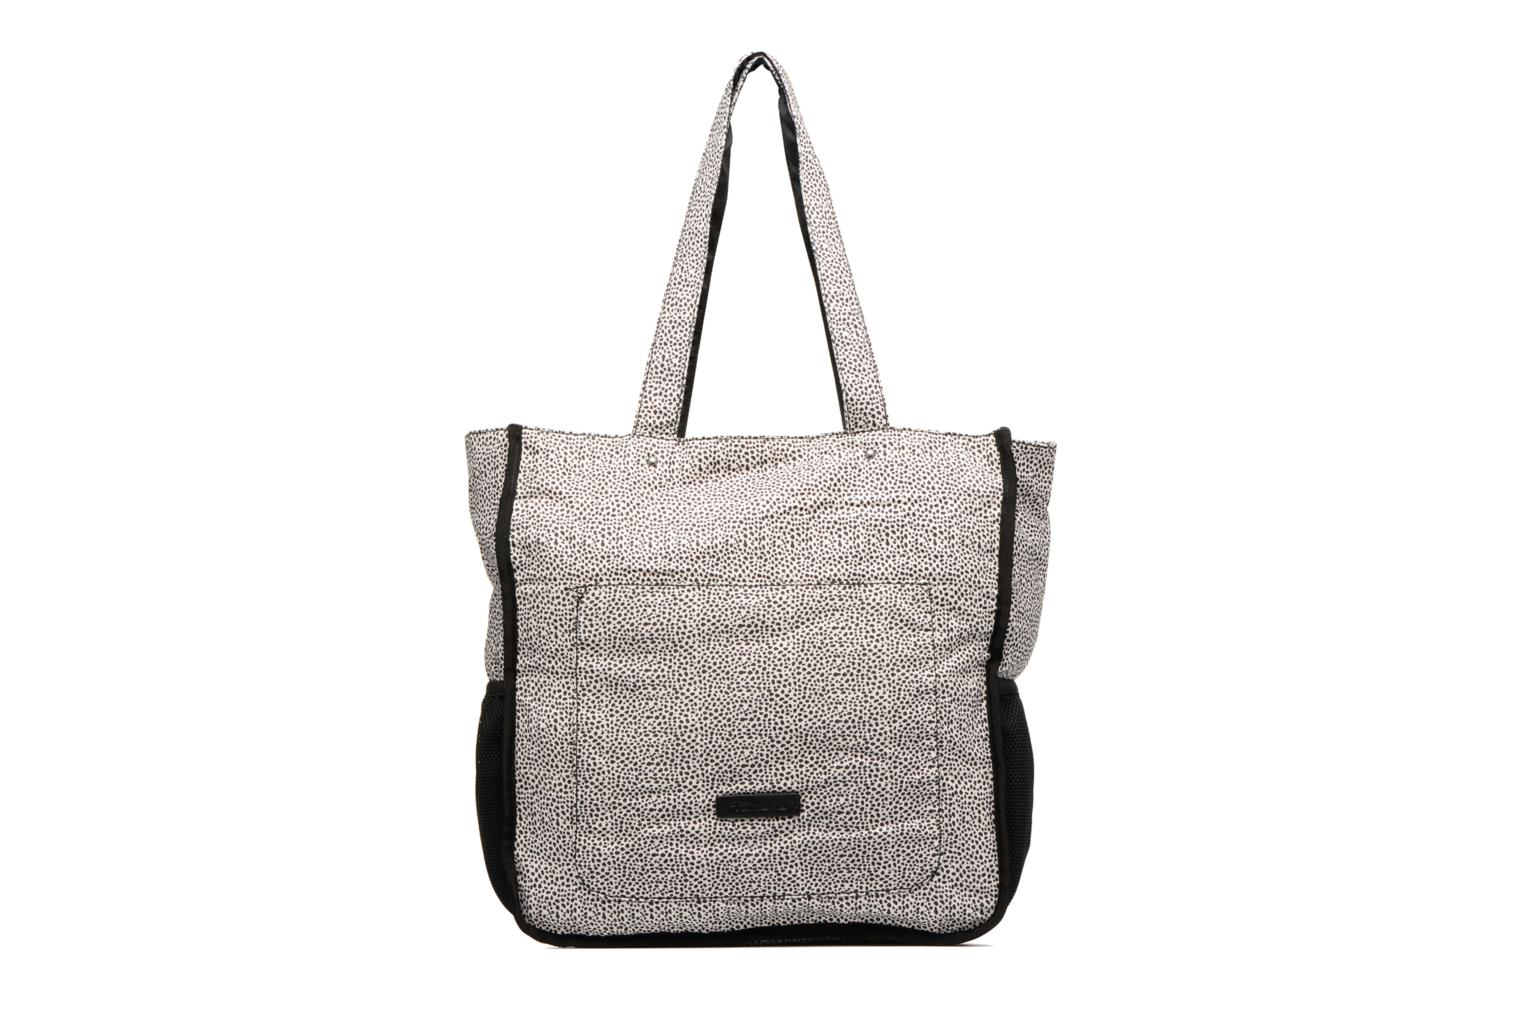 Nikky Shopping Bag Black White